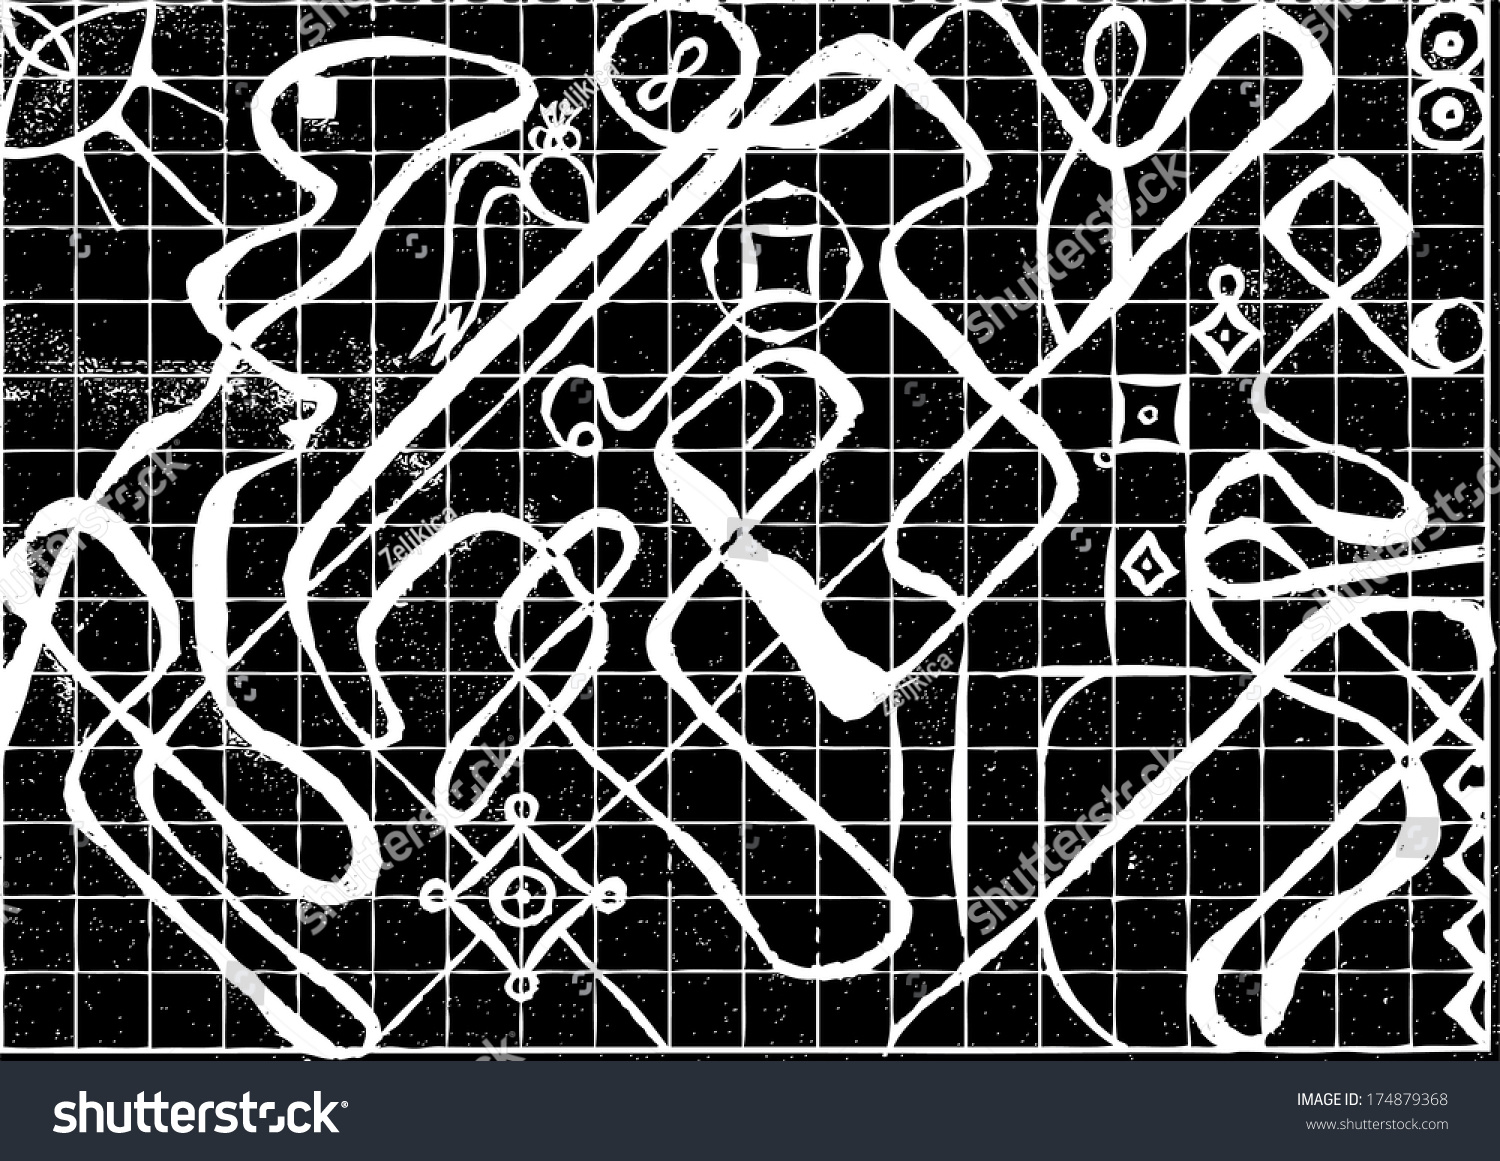 Stock Illustration Volleyball Tribal Abstract Vector: Vector Illustration Of Black & White Triangle Tribal